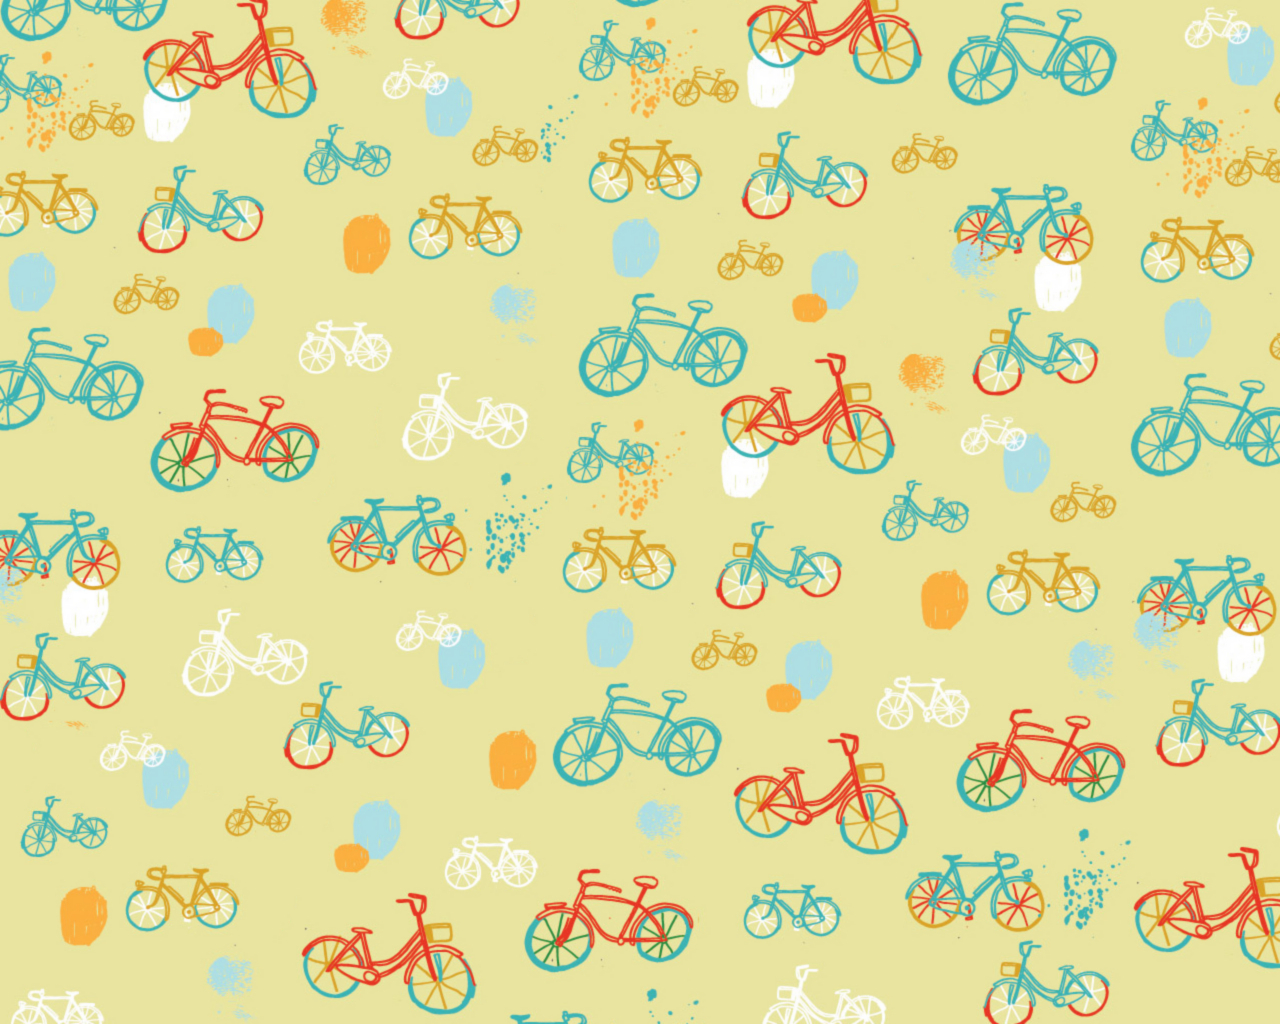 Bicycles shapes abstract HD Wallpaper